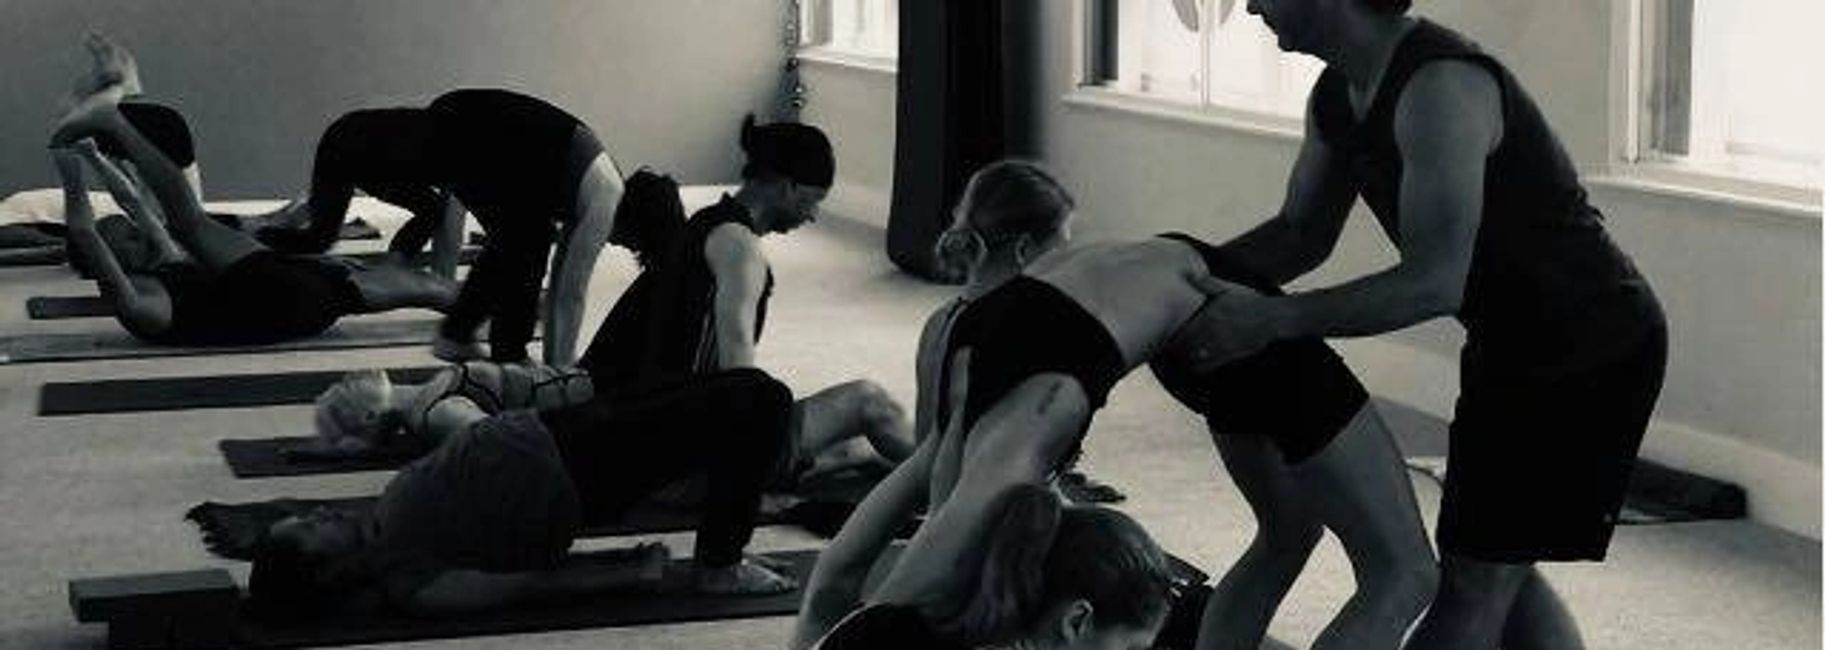 Ashtanga Immersion, Ashtanga immersion guildford, Yoga Guildford, Mysore Guildford, Guildford Yoga